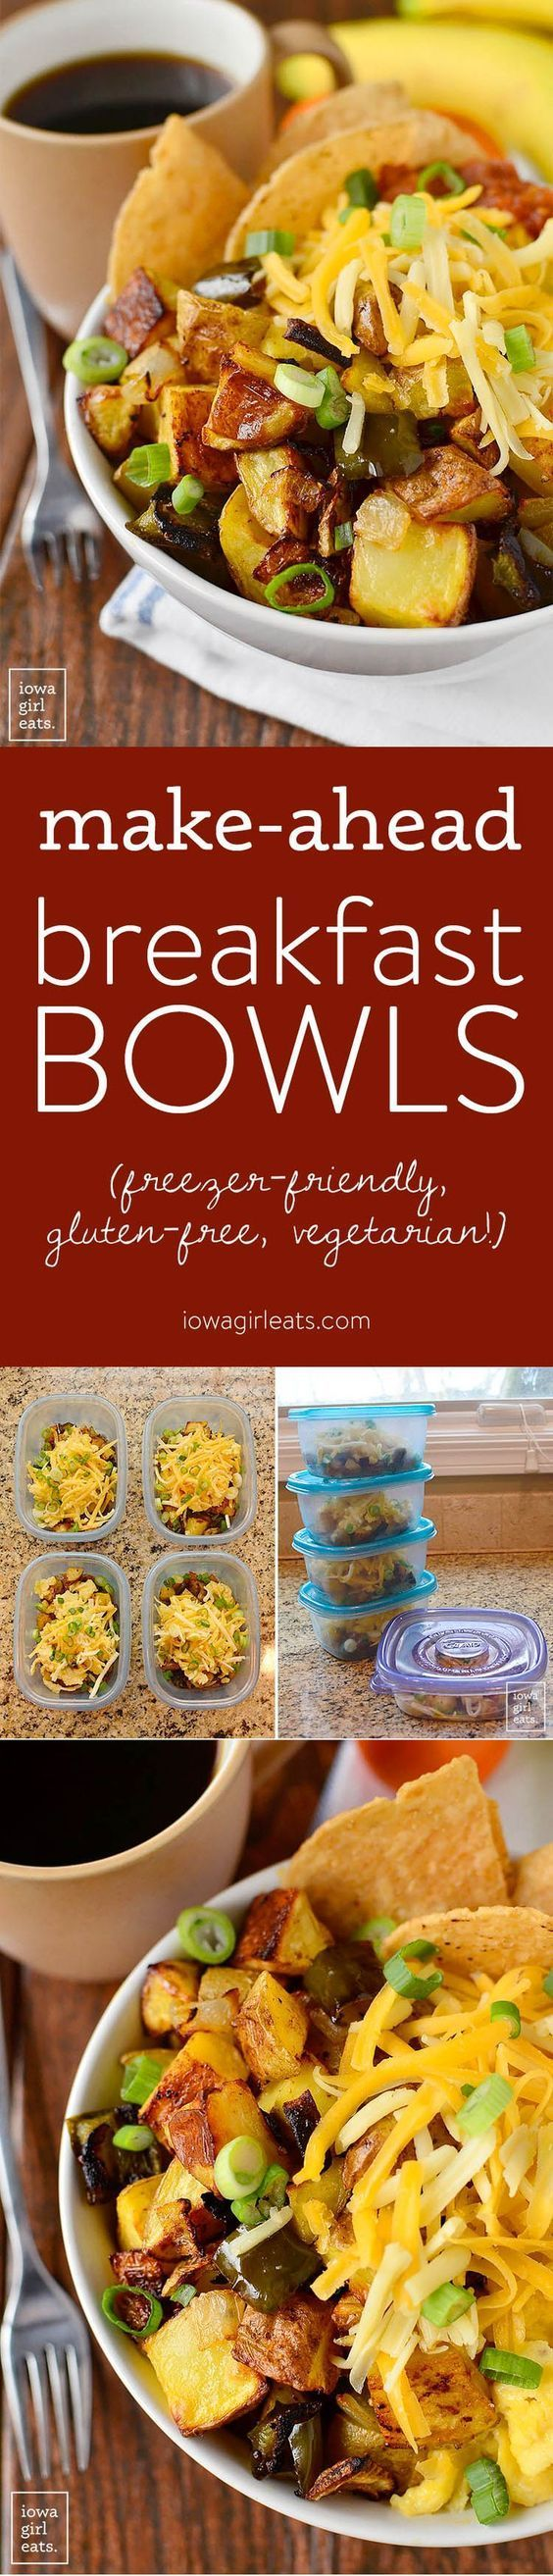 Make-Ahead Breakfast Bowls are full of filling, hearty ingredients to power you through your morning. This vegetarian and gluten-free recipe is also freezer-friendly!   http://iowagirleats.com